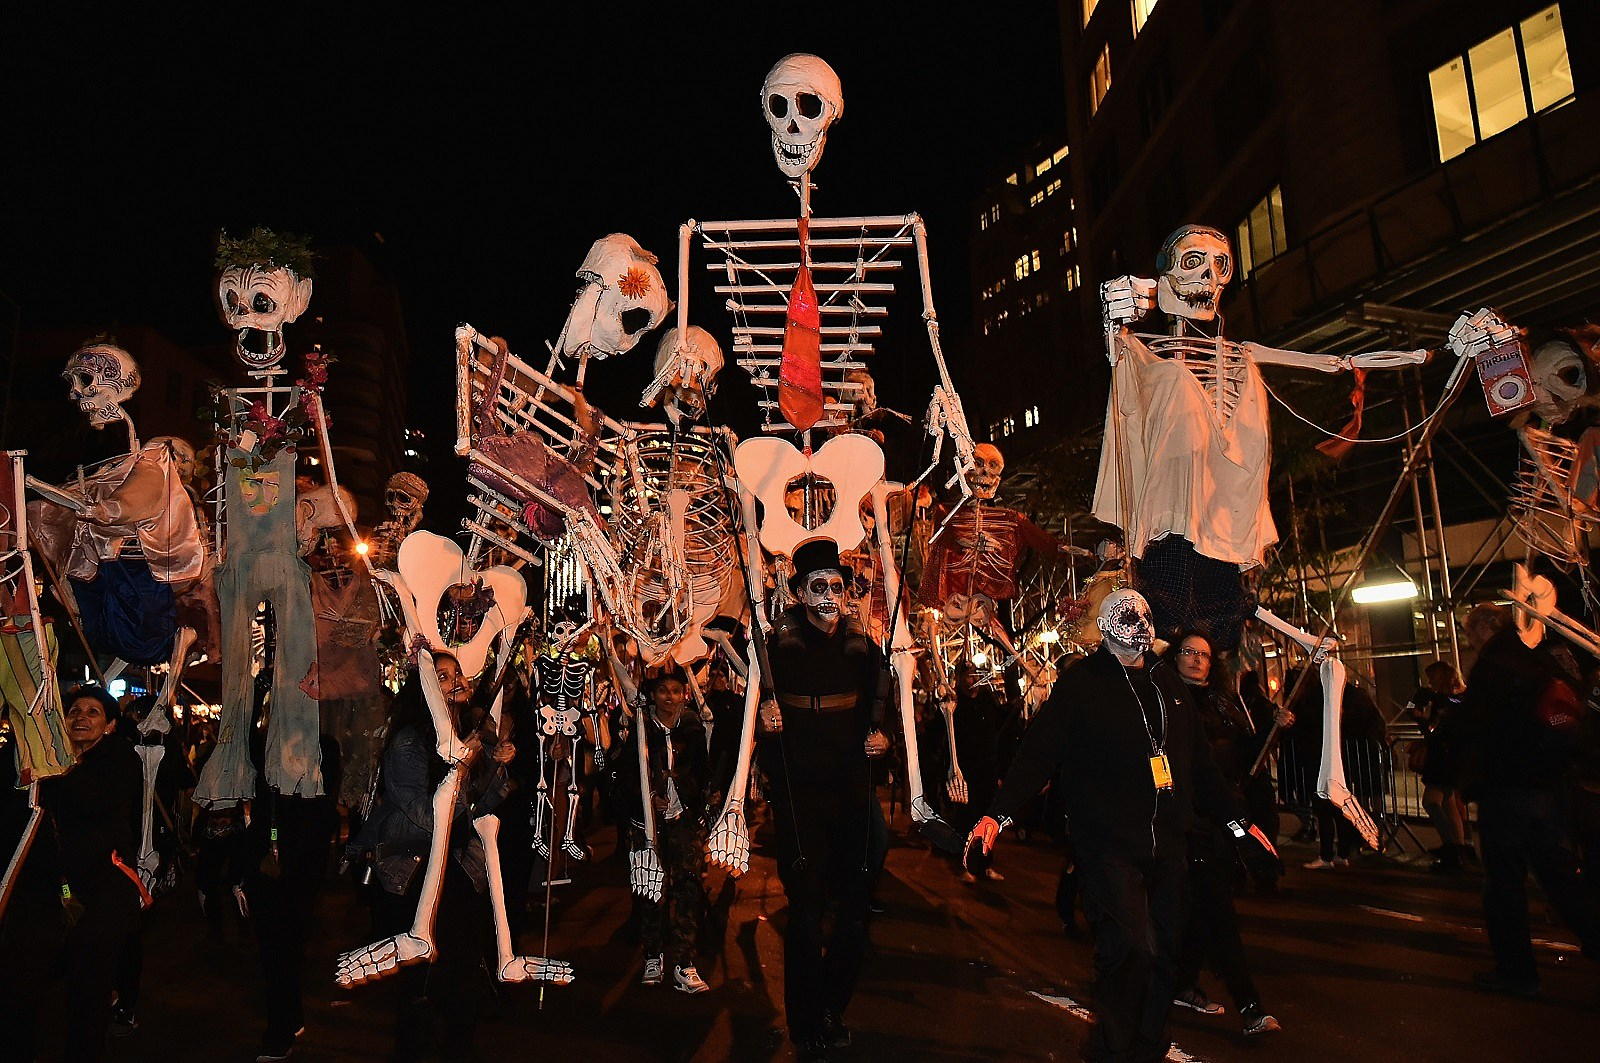 43rd Annual Village Halloween Parade